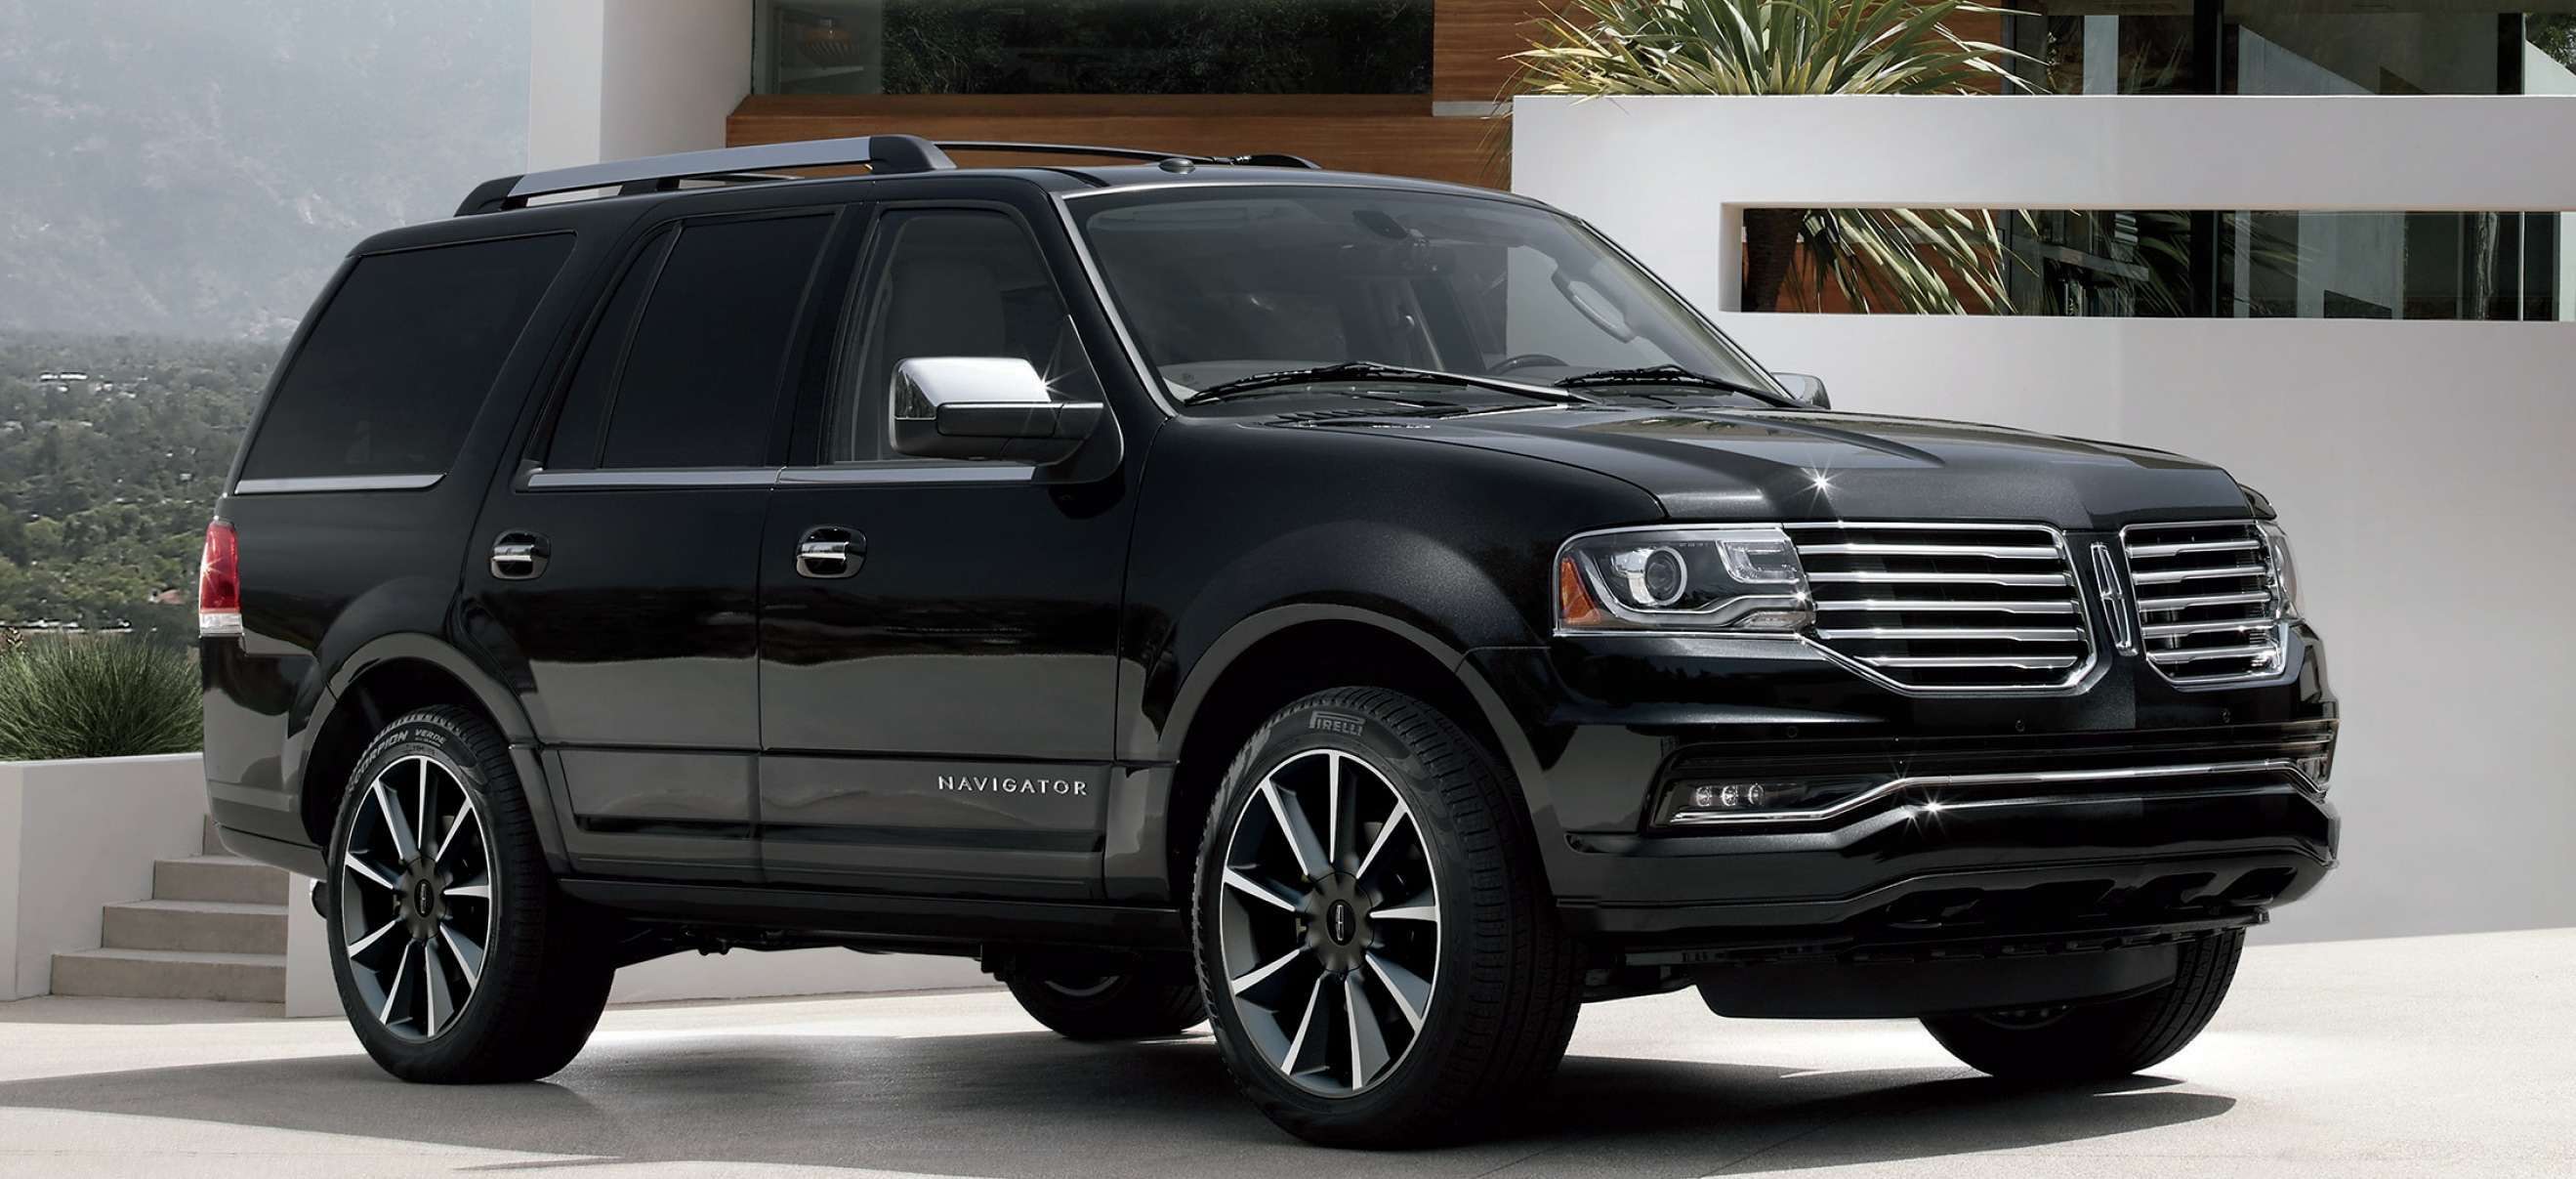 2017 lincoln navigator in st louis mo dave sinclair lincoln south. Black Bedroom Furniture Sets. Home Design Ideas